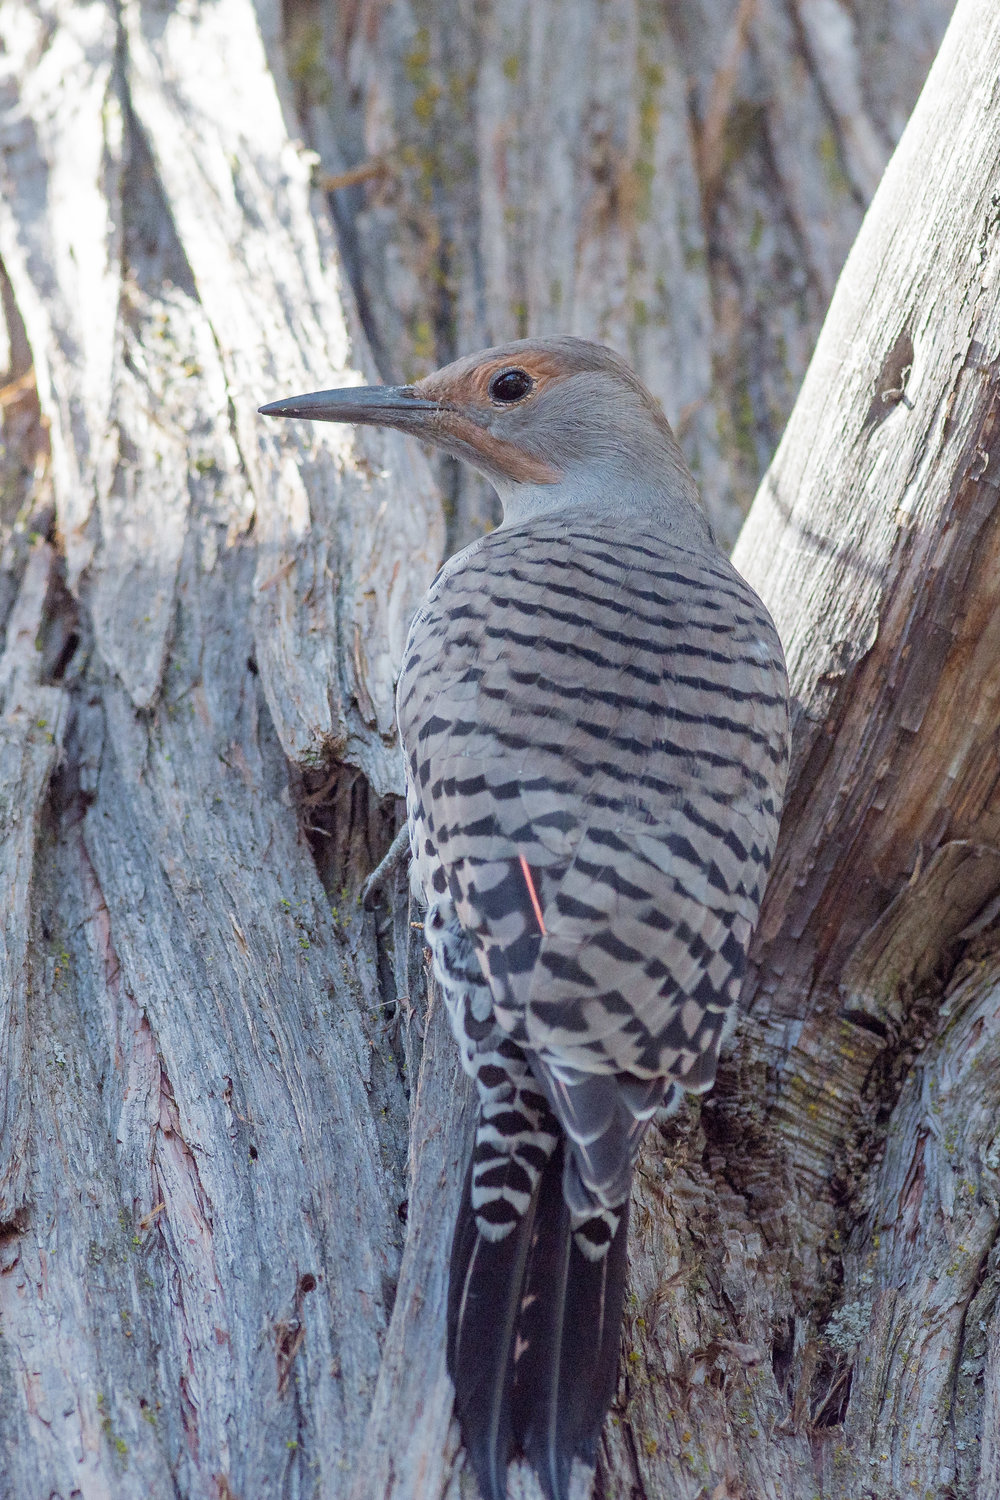 Northern Flicker, Red-shafted (Colaptes auratus) - Sawyer Park, Deschutes Co. (OR)  EQ: D7200, 300mm f/2.8   Taken: 9-30-2016 at 9:59   Settings: 450 mm (35mm eqiv), 1/1250s, f/4.5, ISO250, +1/3EV         Conditions: Shady/Sunny